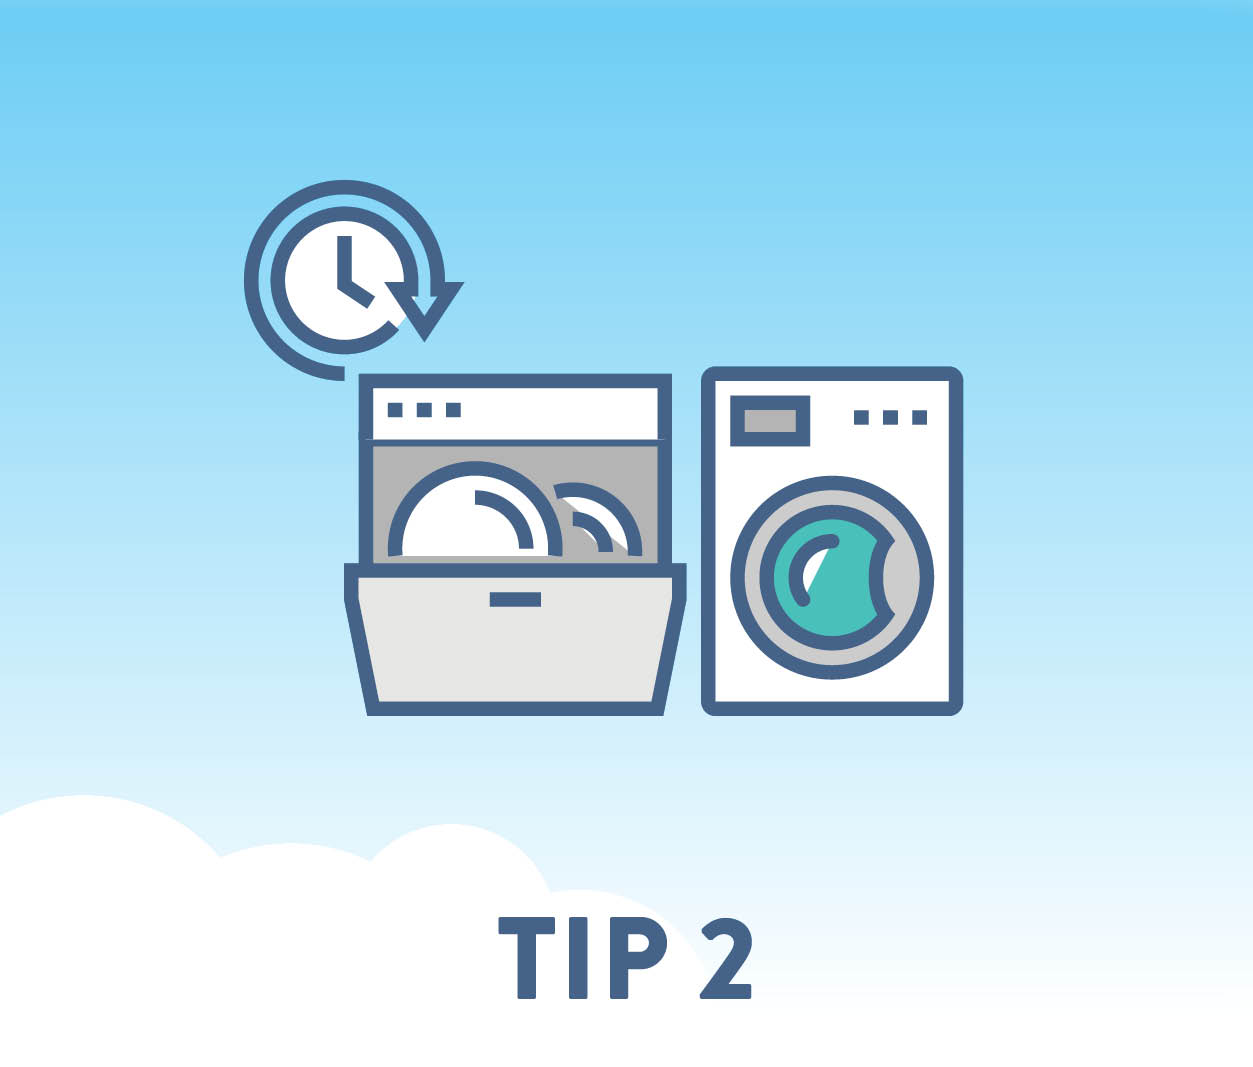 Set timers to run your dishwasher, clothes dryer and other appliances outside of peak hours.